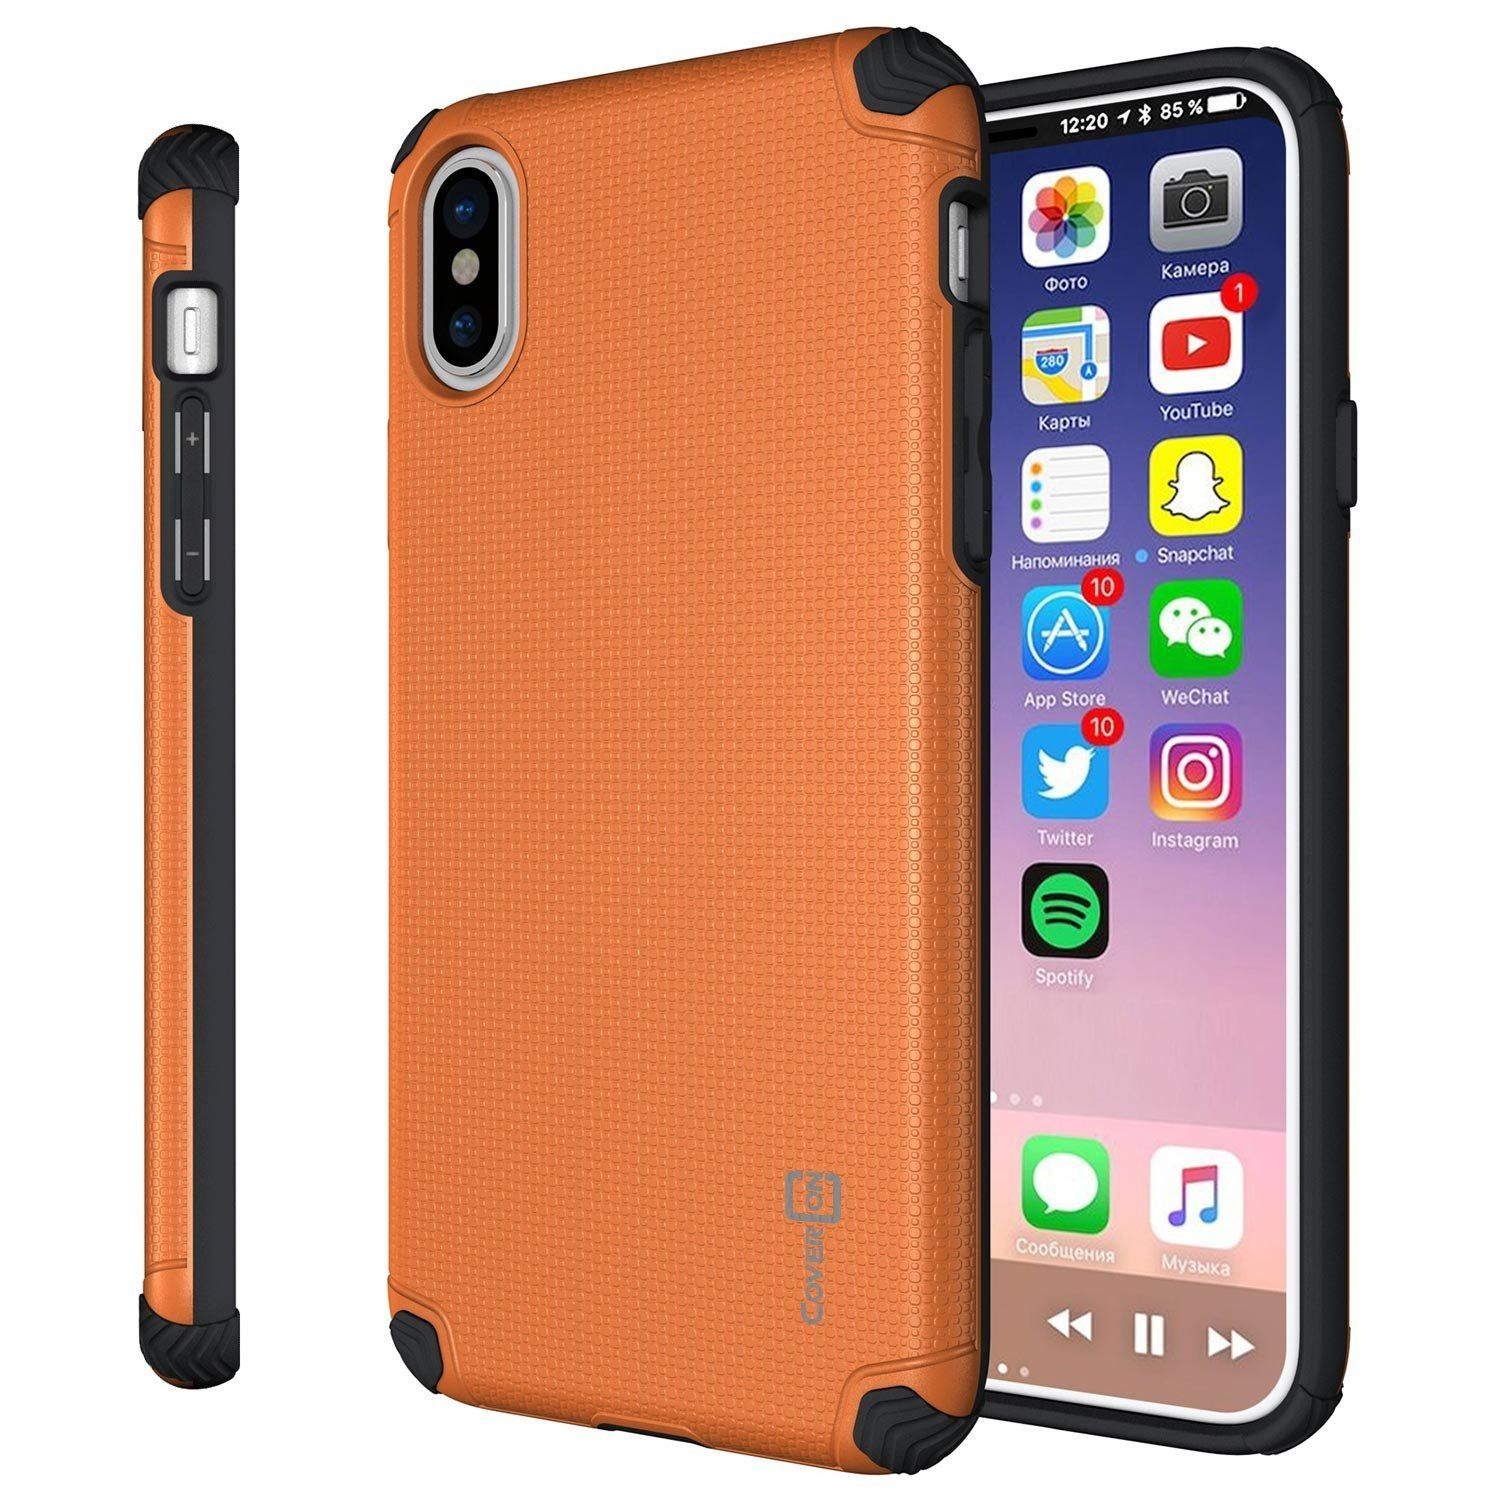 iPhone X Slim Case CoverON Bios Series Minimalist Thin Fit Protective Hard Phone Cover with Embedded Metal Plate for Magnetic Car Mounts Orange and Black